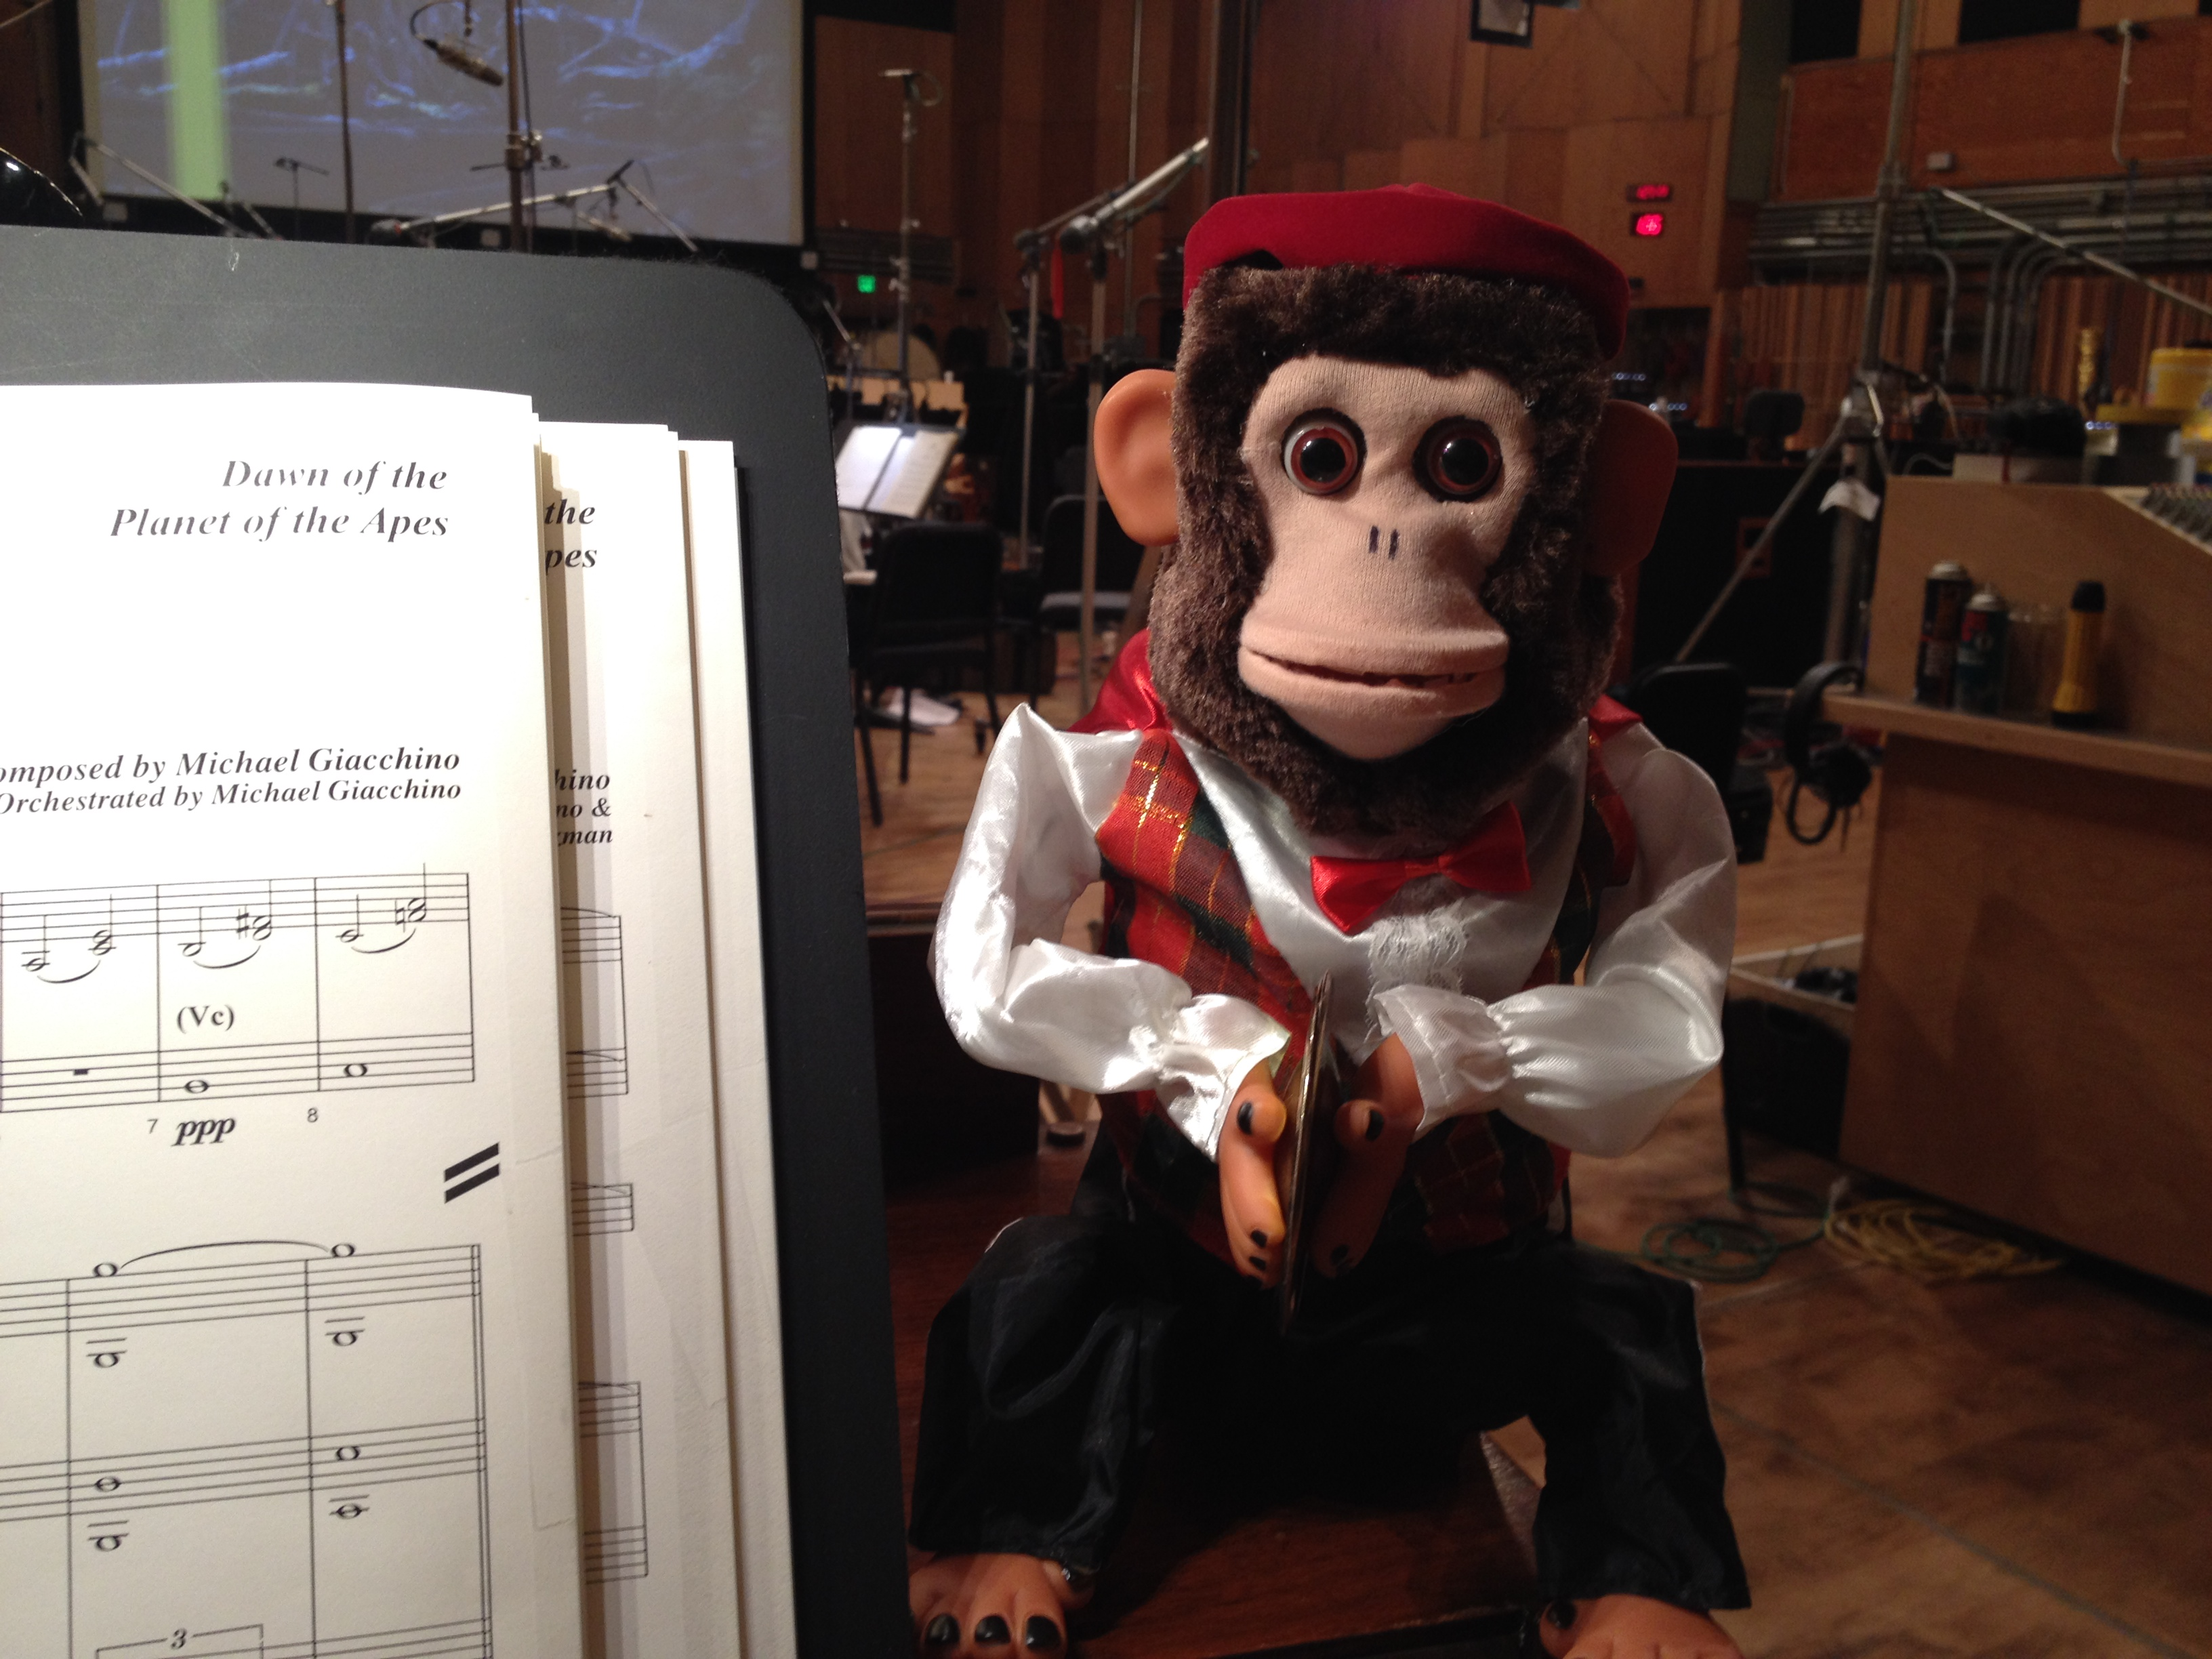 My Monkey for the Organ!